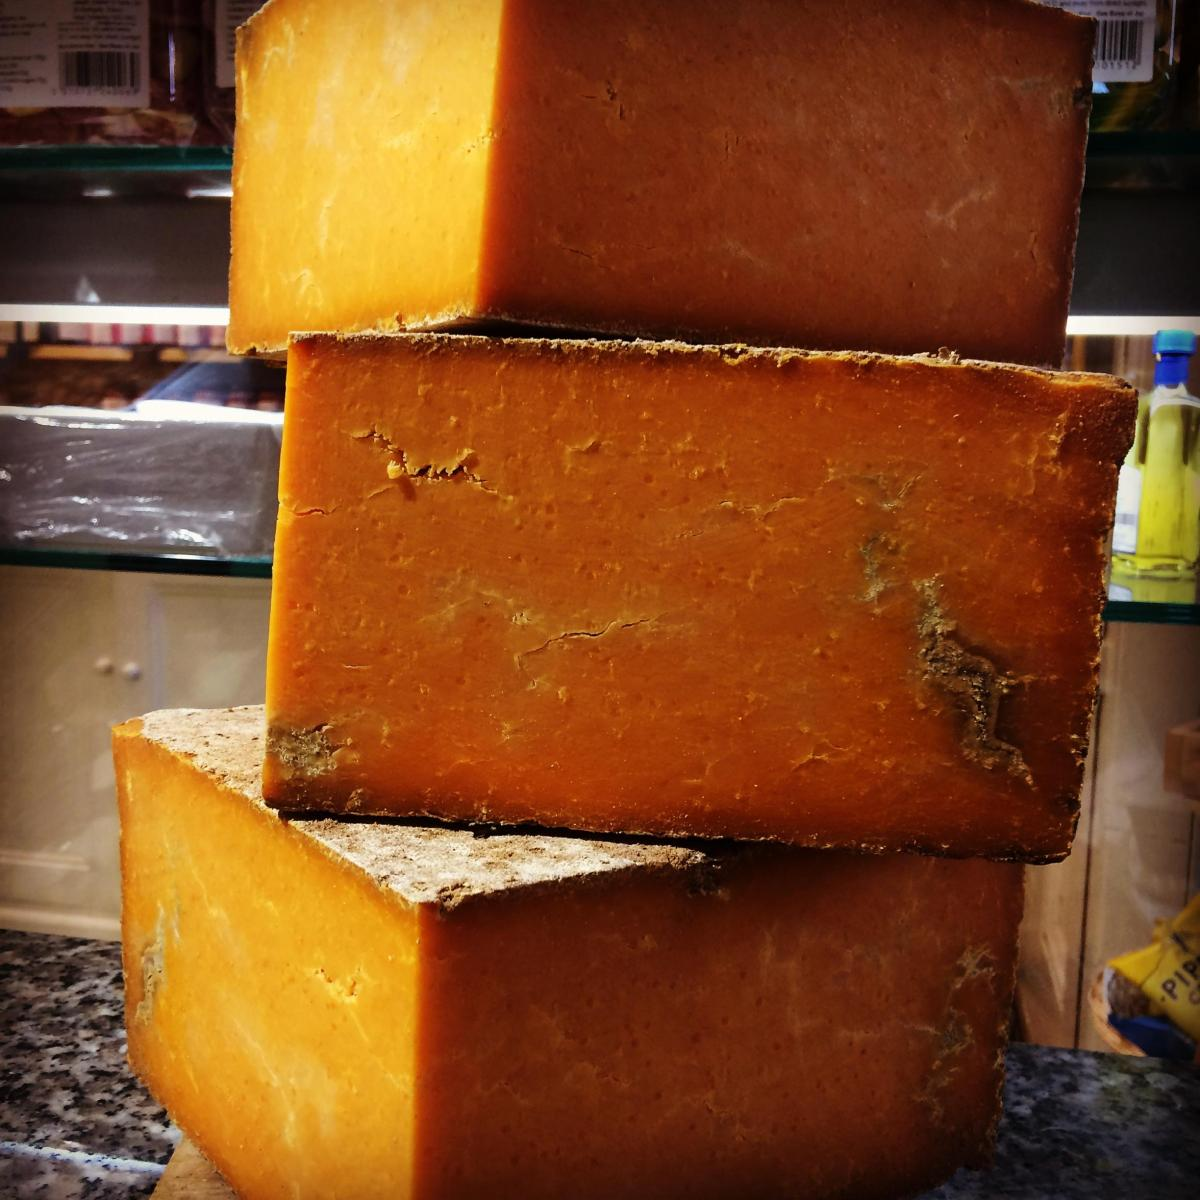 Cheese of the month: Sparkenhoe Farm Vintage Red Leicester